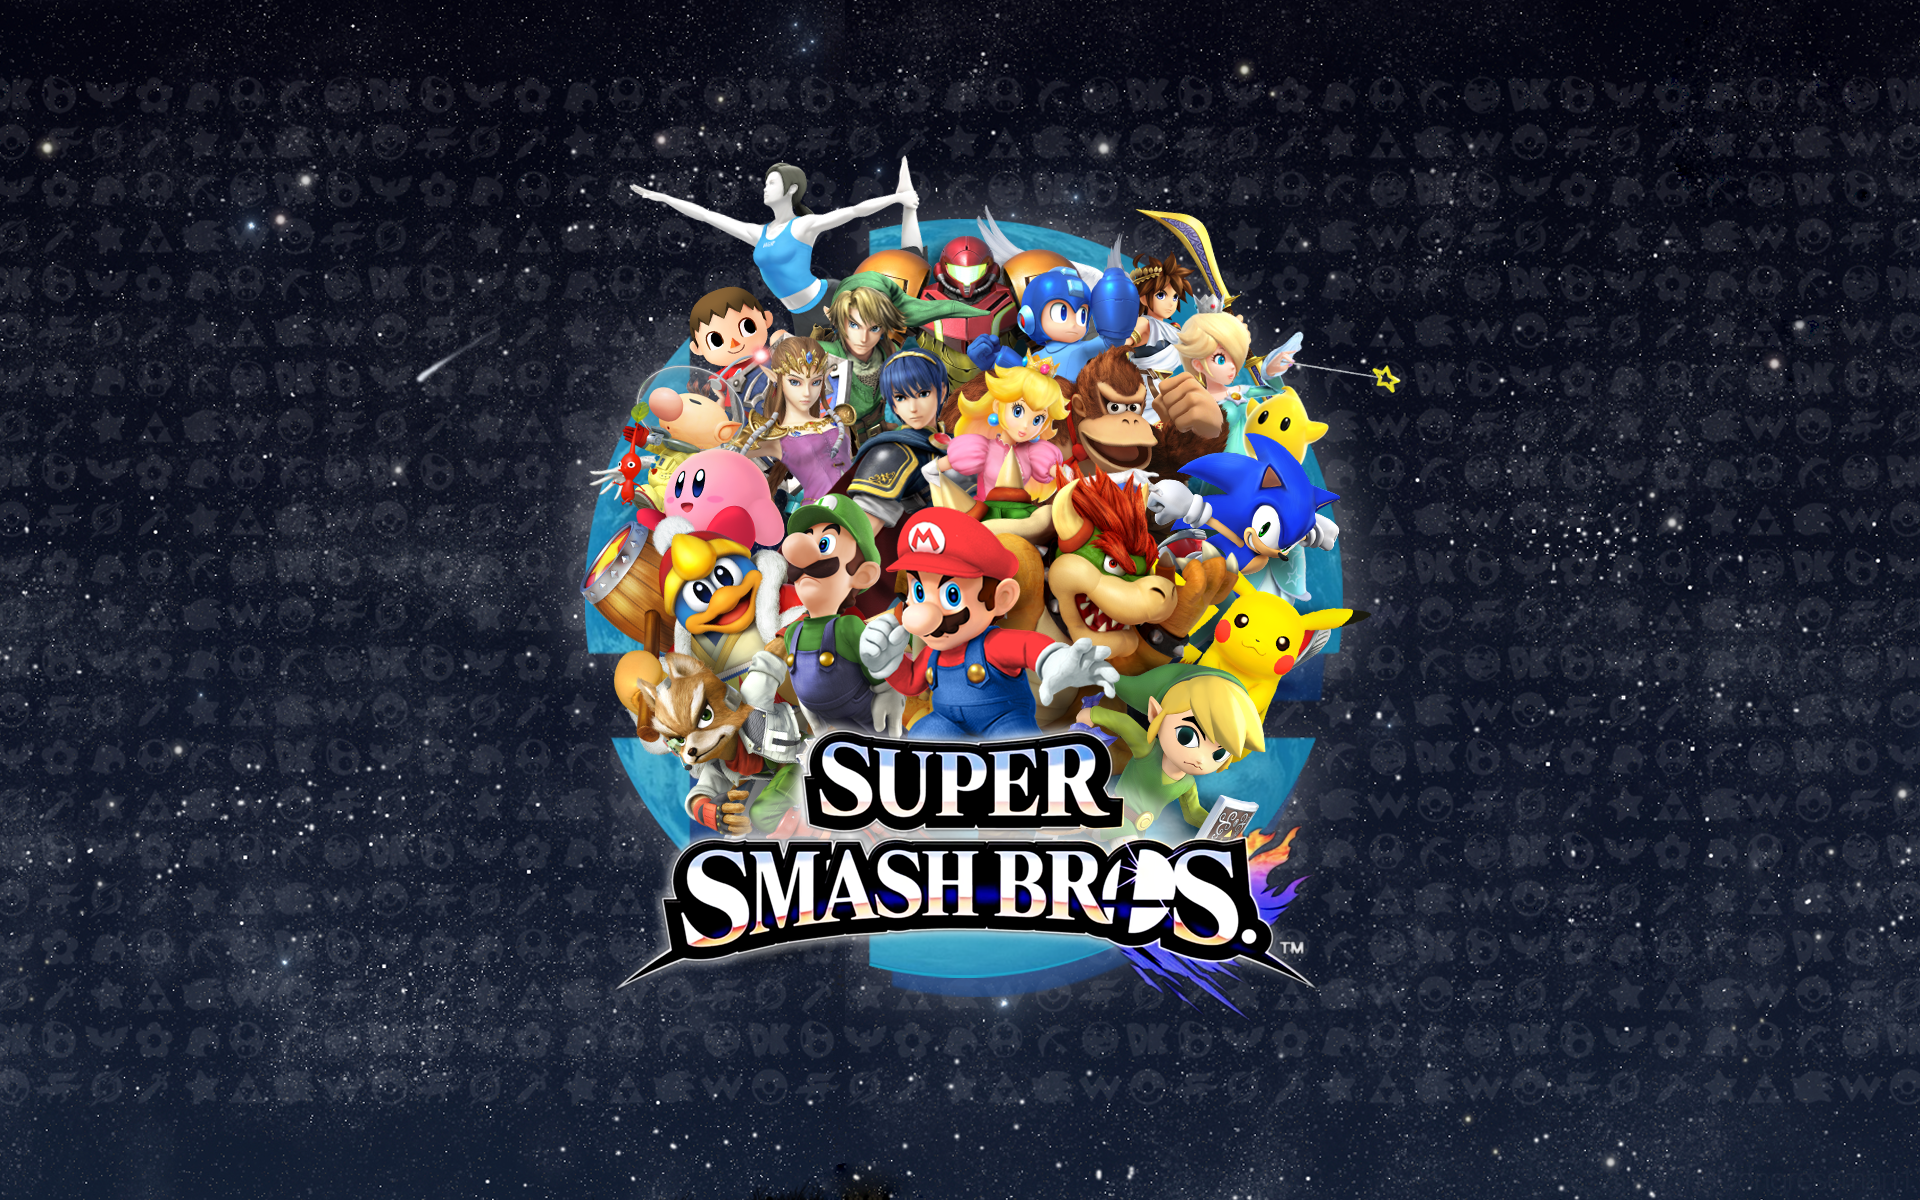 Smash Wallpaper in HQ Resolution